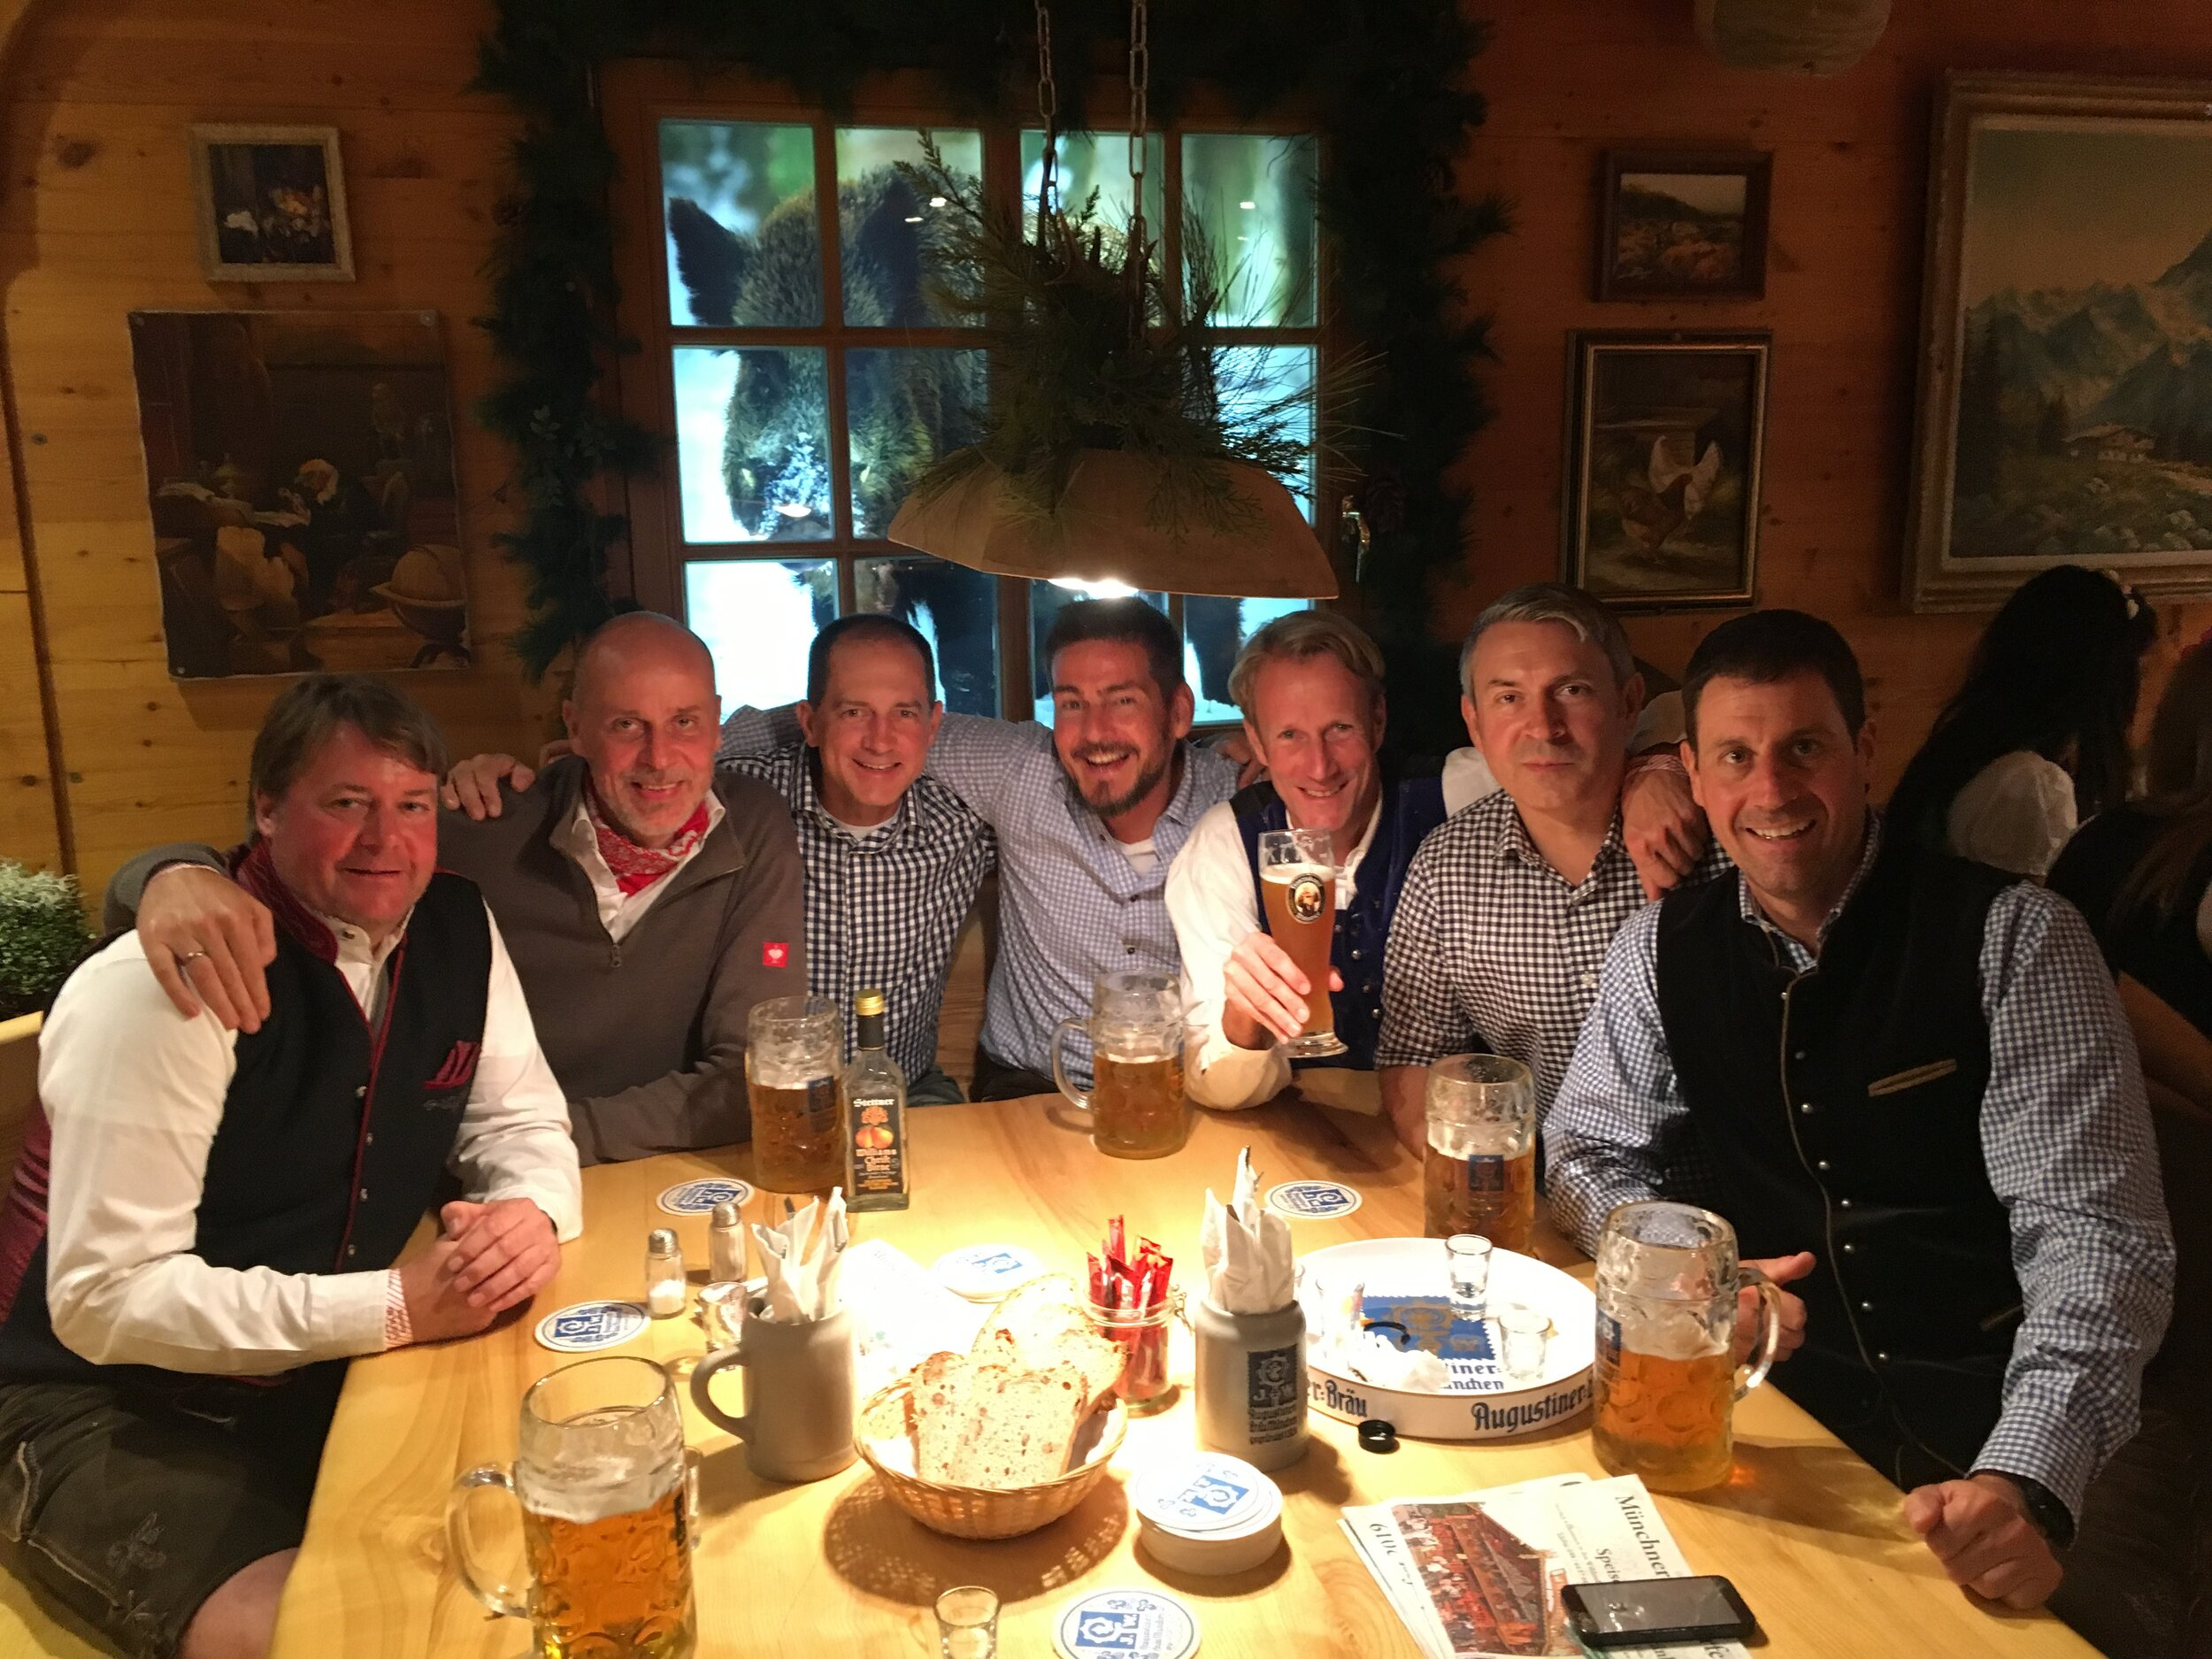 THE GANG OF GUYS AT WILDSTUBEN, CELEBRATING GREAT HIKING AND WIESN 2019! SERVUS! PROST! DANKE!